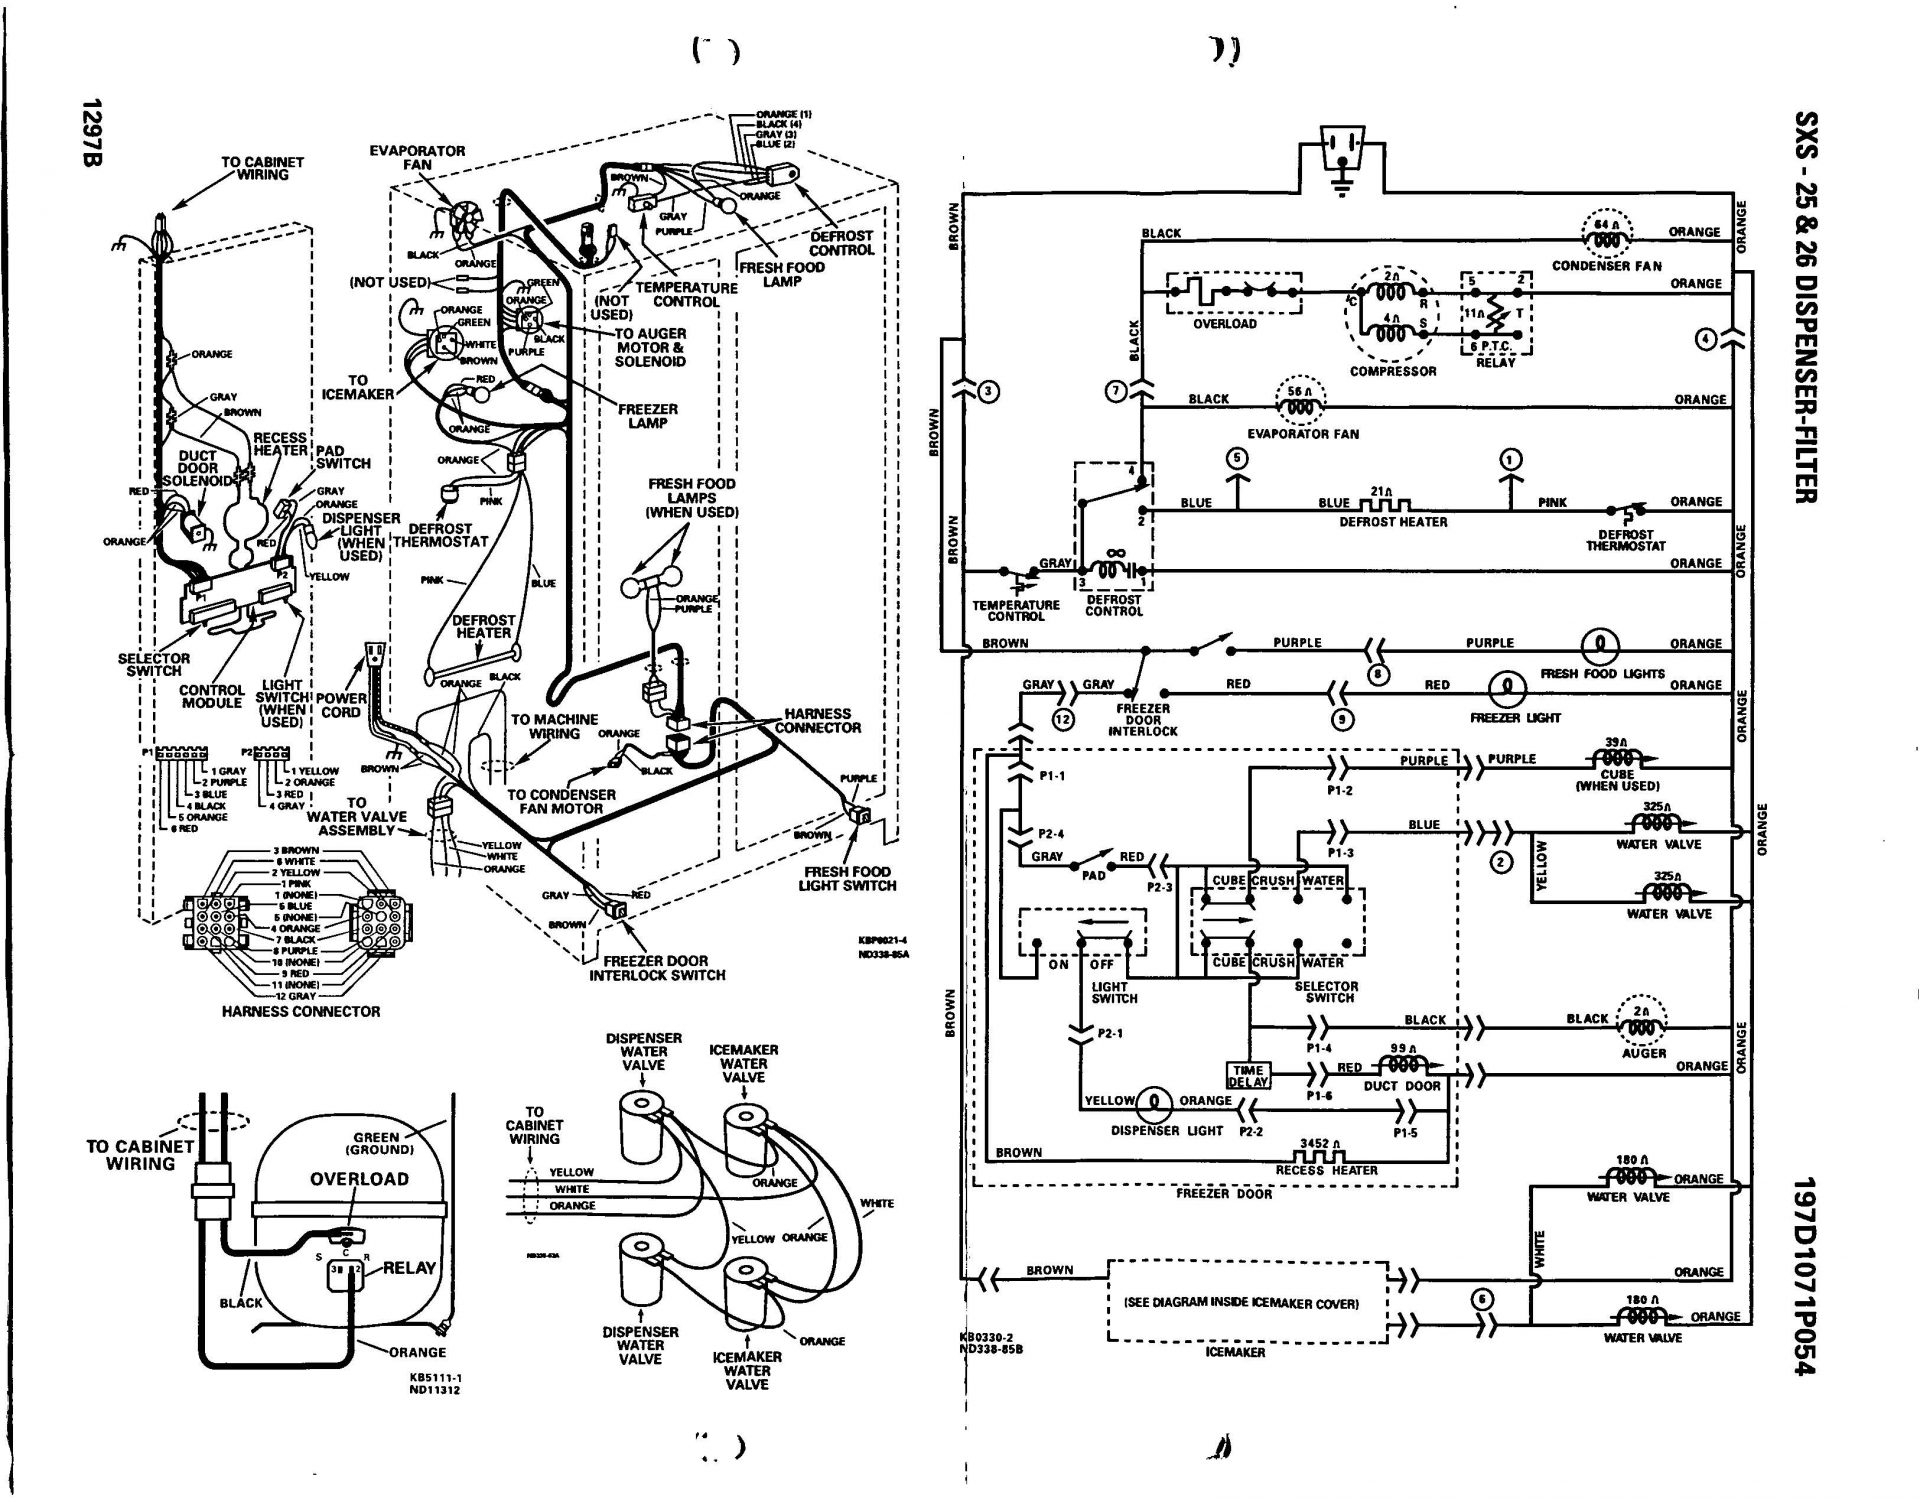 Model Wiring Diagram | Wiring Diagram Database on kenmore electric dryer diagram, washing machine parts diagram, kenmore washing machine exploded view, kenmore washing machine installation, kenmore washing machine timer, kenmore washing machine motor, maytag washing machine wiring diagram, kenmore washing machine repair, kenmore washing machine parts, whirlpool stove wiring diagram, washing machine motor wiring diagram, bosch washing machine wiring diagram, kitchenaid washing machine wiring diagram, kenmore washing machine brake, kenmore washing machine user manual, estate washing machine wiring diagram, ge washing machine diagram, samsung washing machine wiring diagram, kenmore washing machine clutch, admiral washing machine wiring diagram,